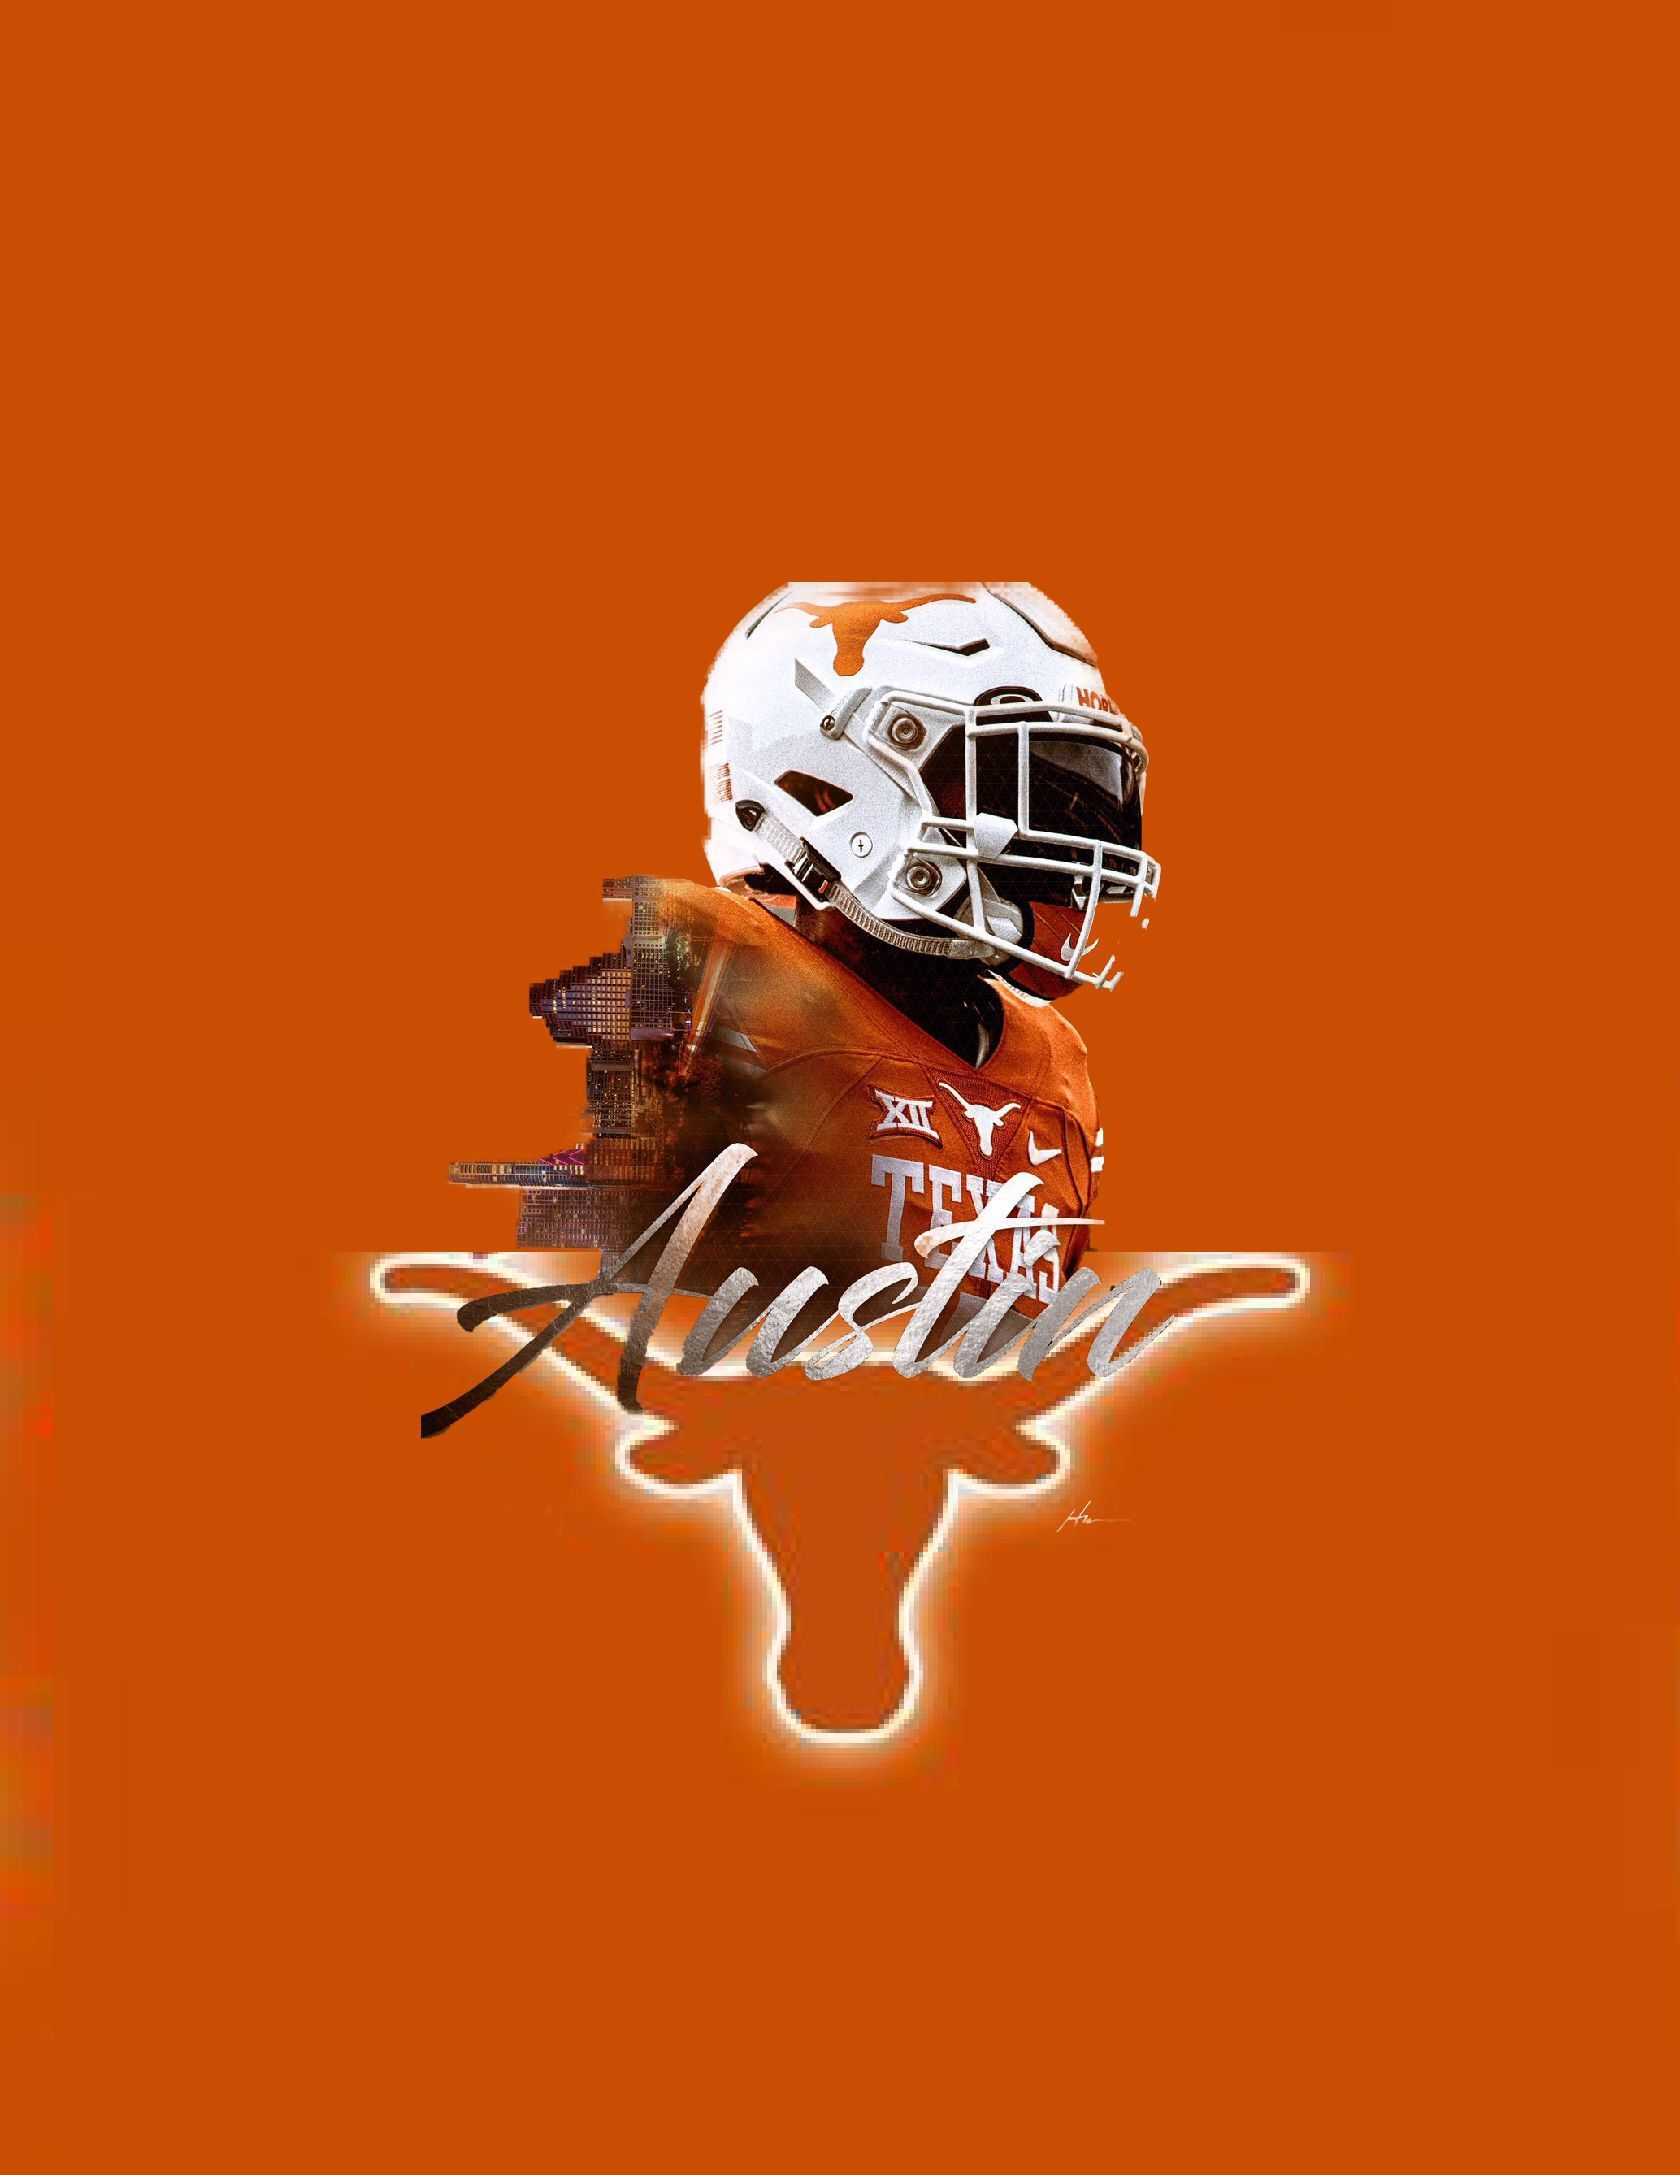 Pin By Dustin P Bruns On Texas Longhorns Wallpaper Texas Longhorns Logo Texas Longhorns Football Texas Football